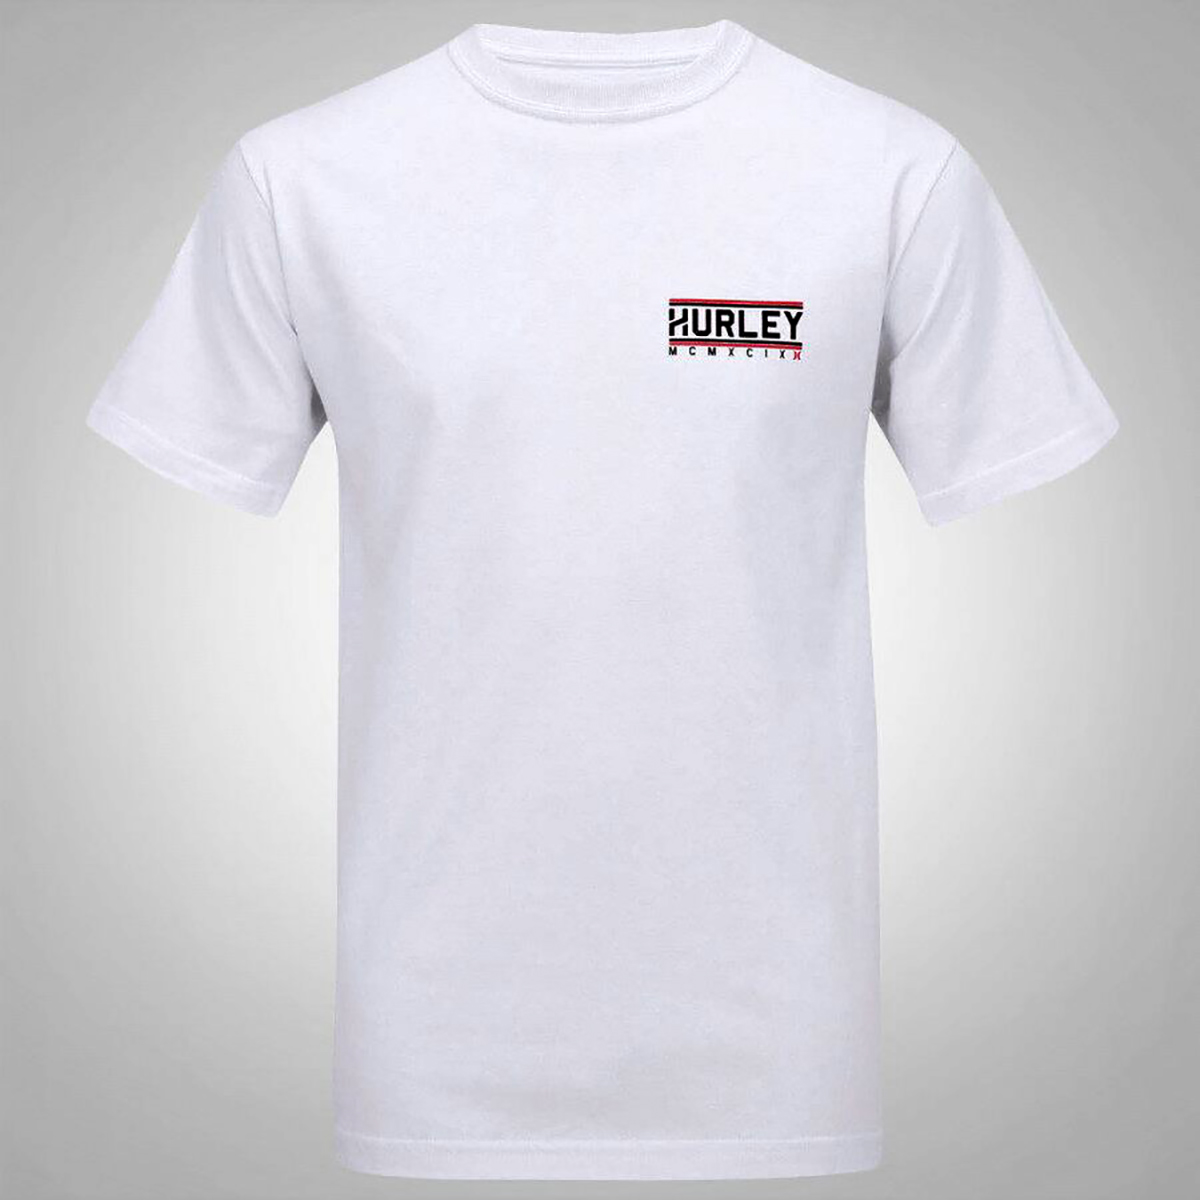 Camiseta Hurley First Row Masculina - Branco